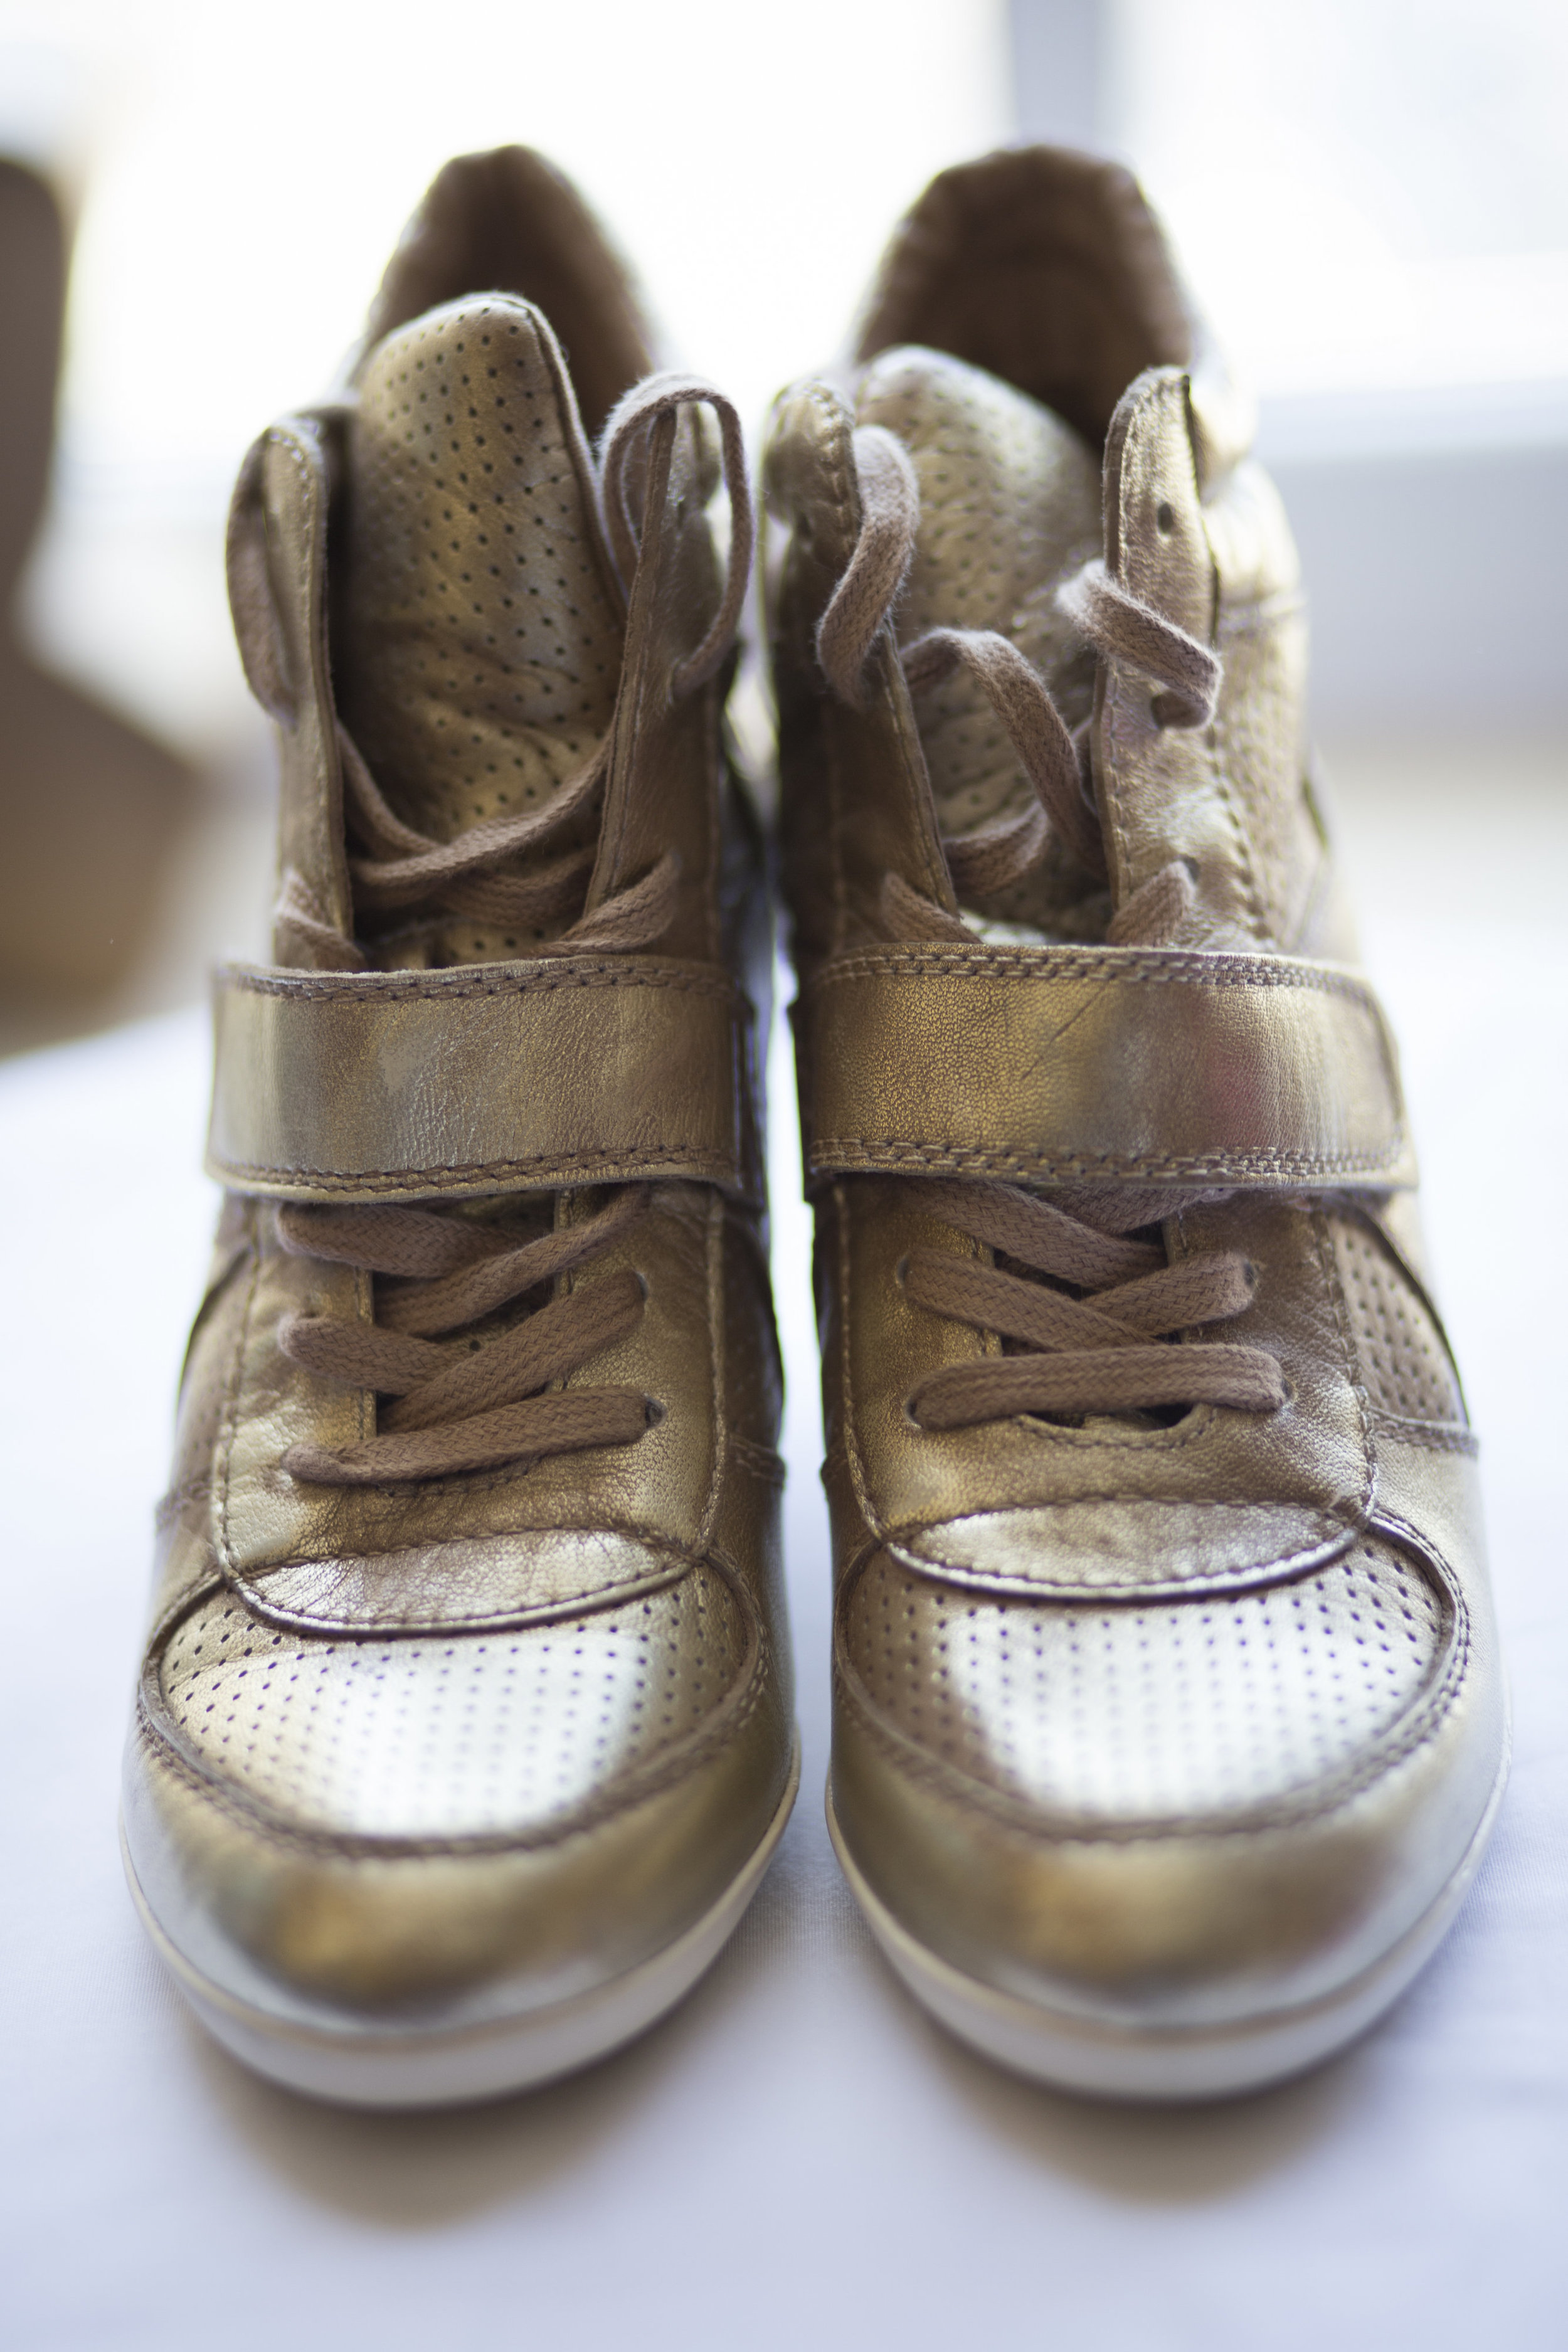 CT Wedding Eolia Mansion Amy Champagne Events Gold Wedding Shoes